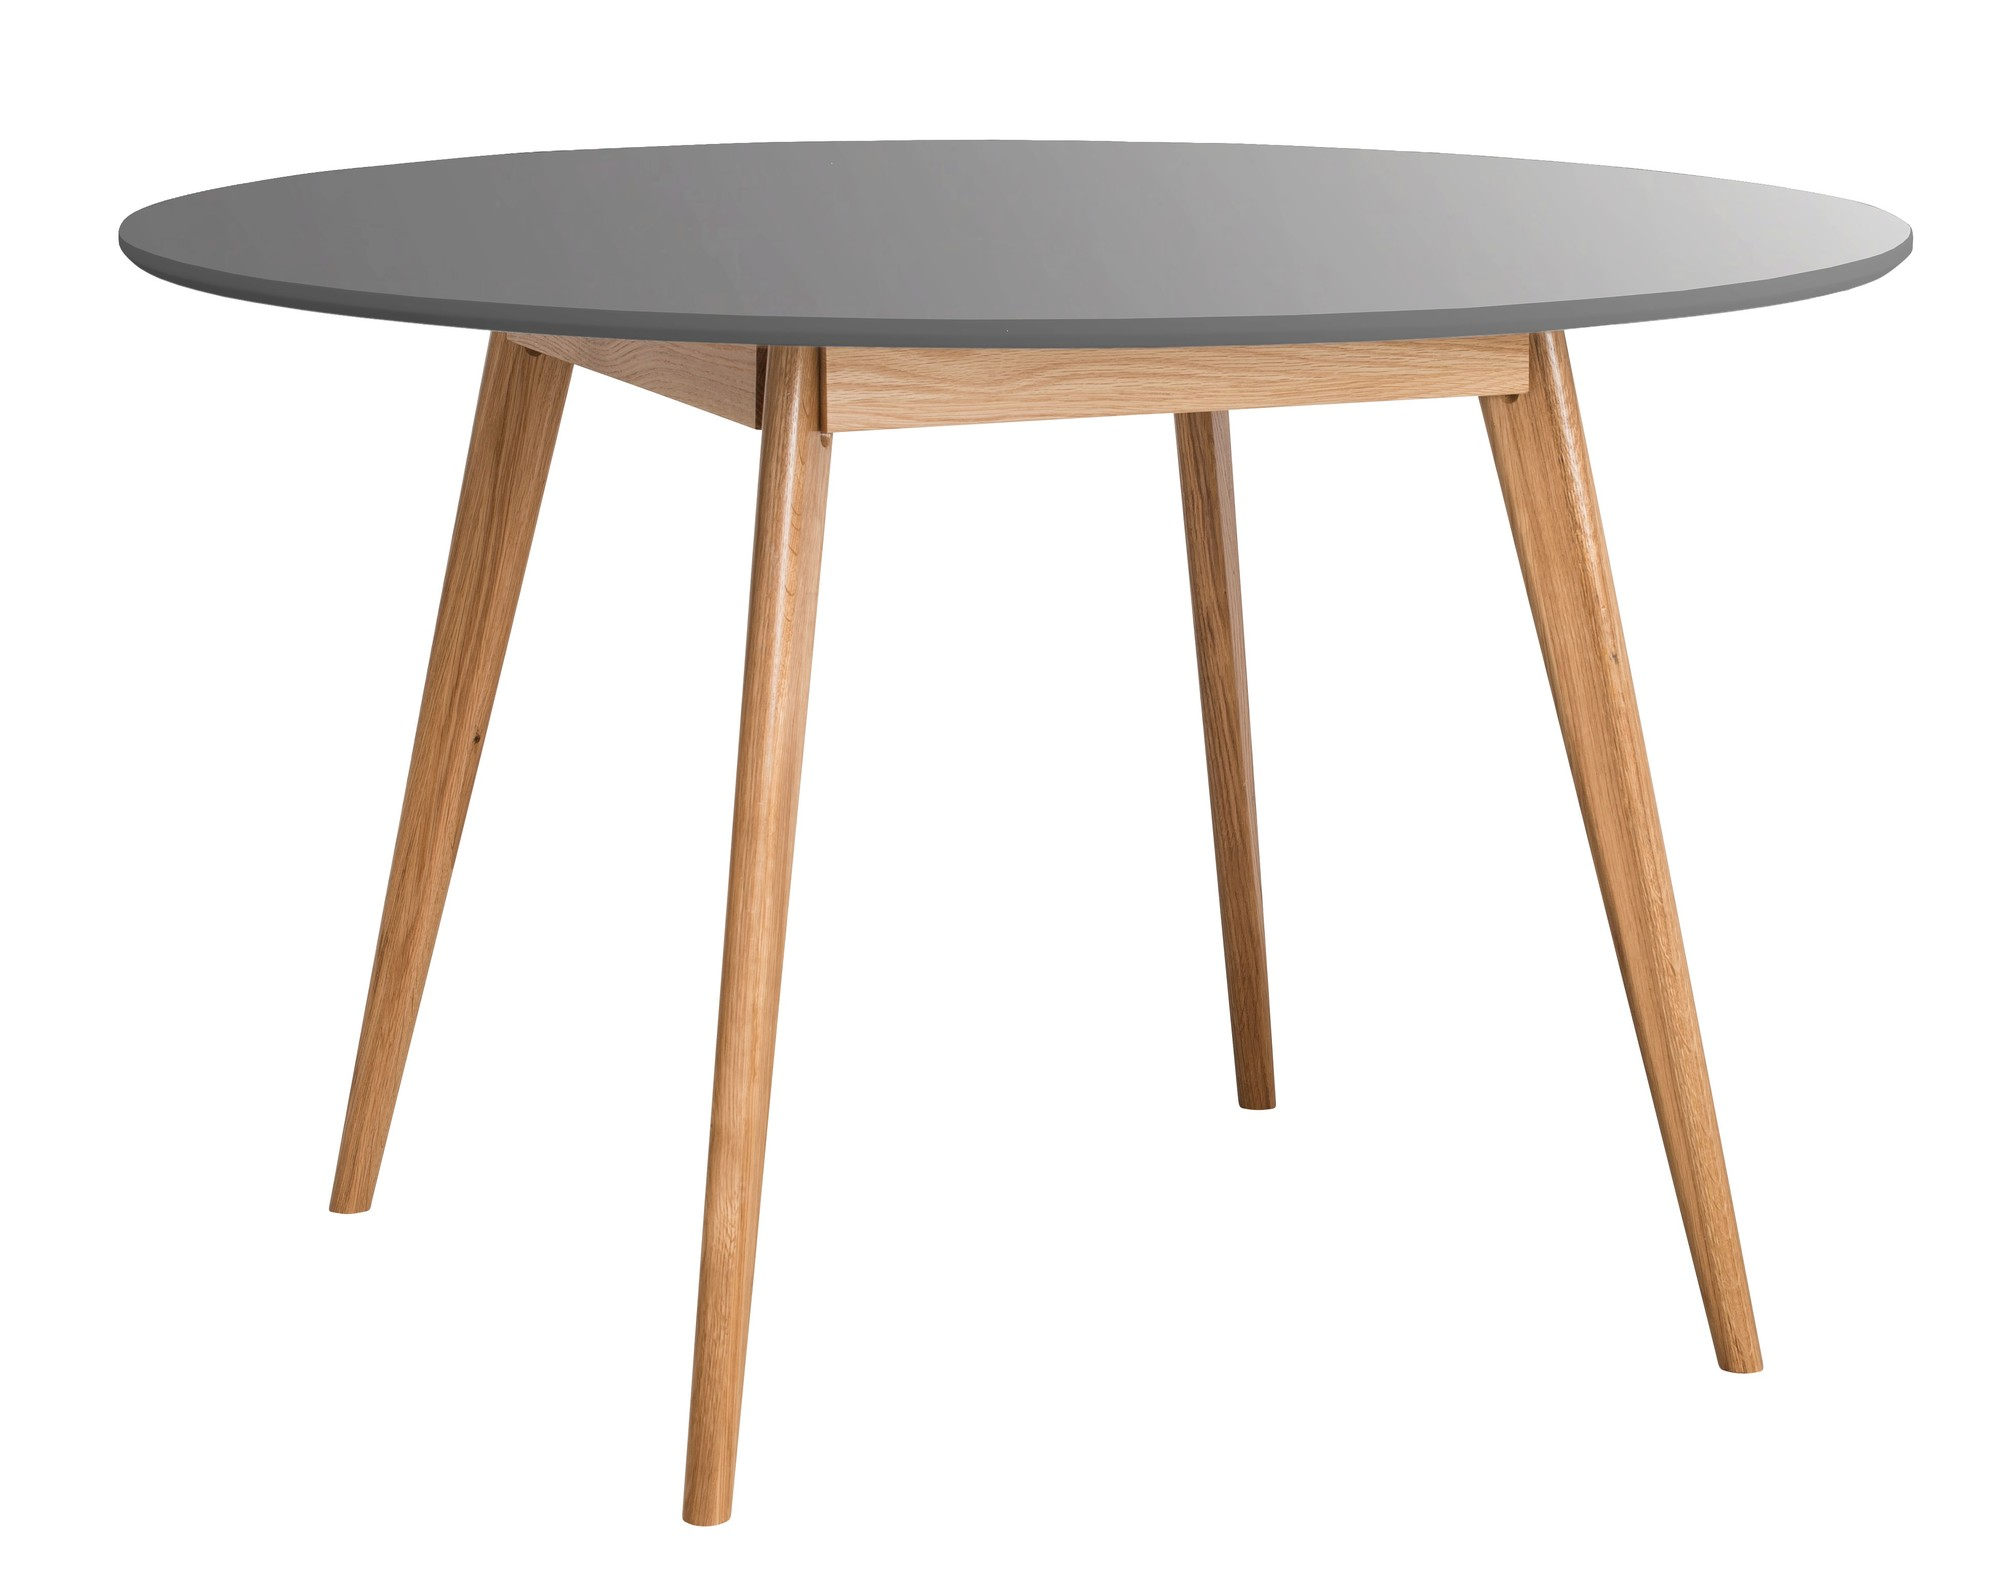 NEW Oslo Round Dining Table EBay